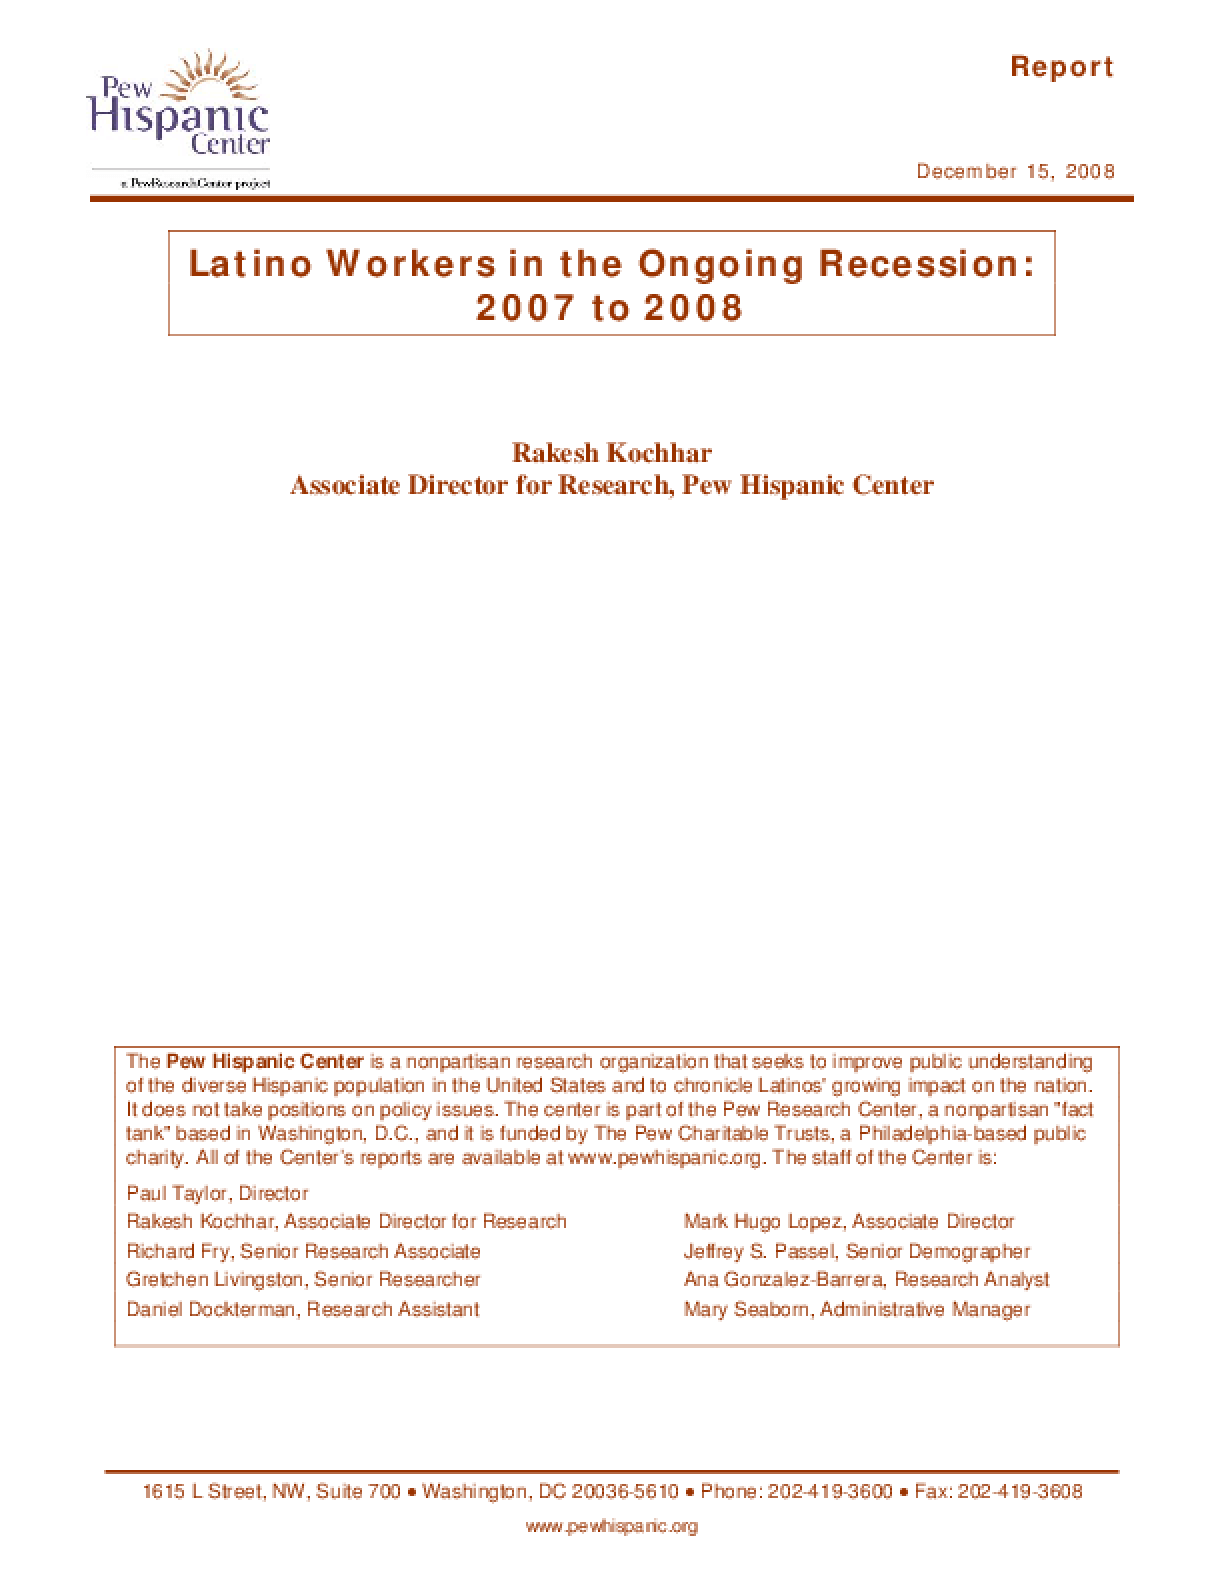 Latino Workers in the Ongoing Recession: 2007 to 2008